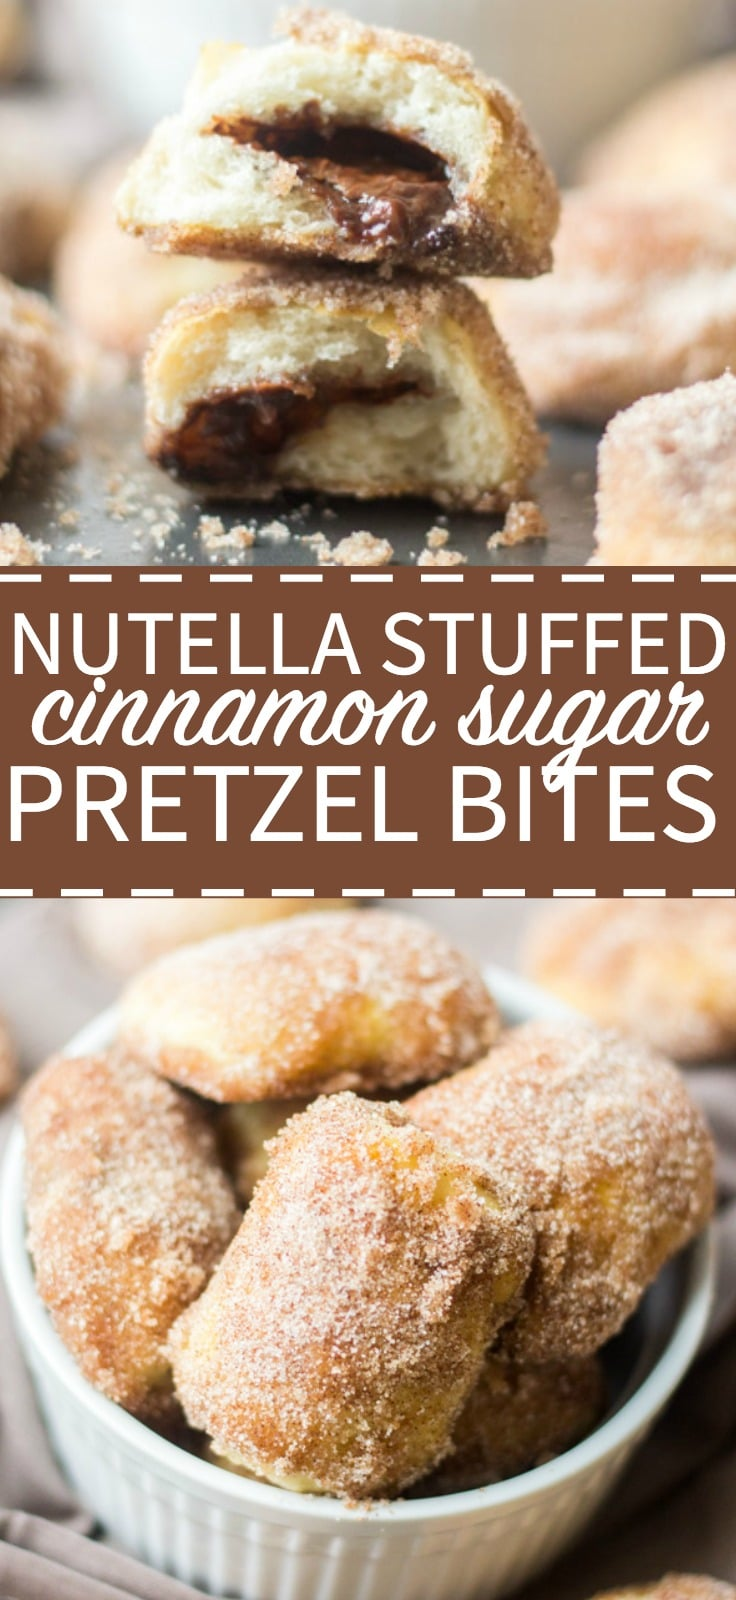 Soft and delicious, these cinnamon sugar pretzel bites are stuffed with nutella and are the perfect snack or dessert recipe for parties.